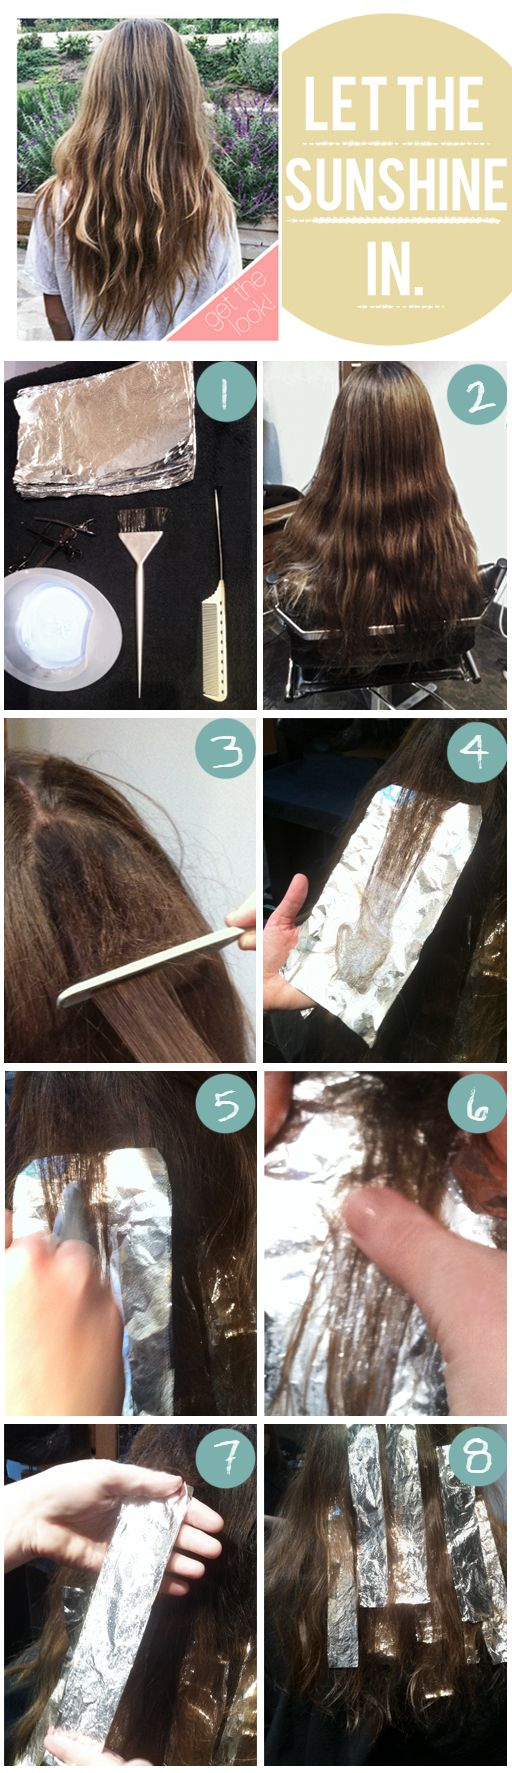 ombre: Beauty Tips, Hairstyles, Hair Styles, Ombre Hair, Tutorial, Lighter Color, Natural Highlights, Hair Color, Ombre Highlights